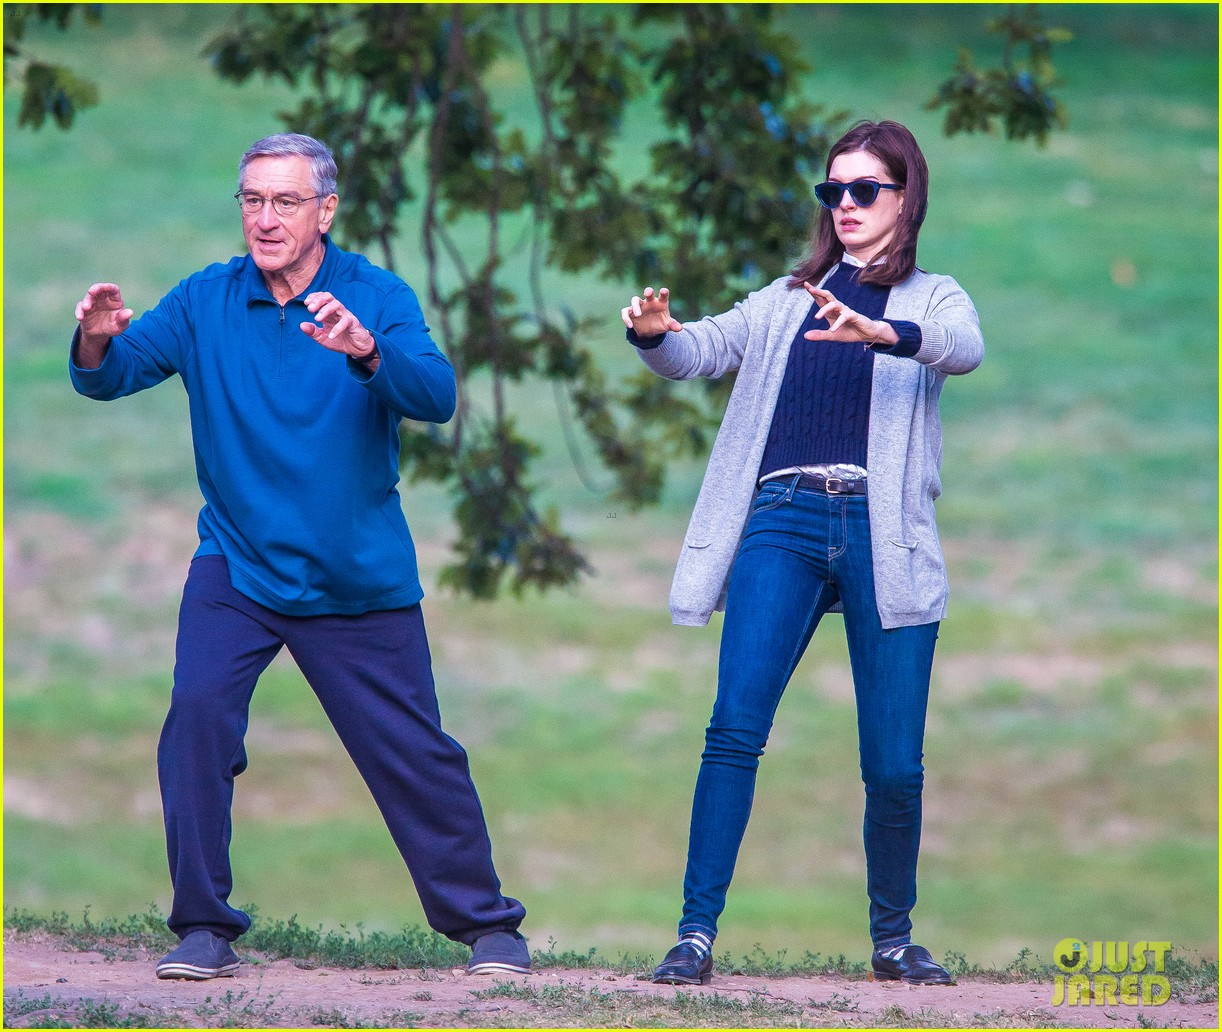 Anne Hathaway And Robert De Niro: Anne Hathaway Does Tai Chi In The Park With Robert De Niro